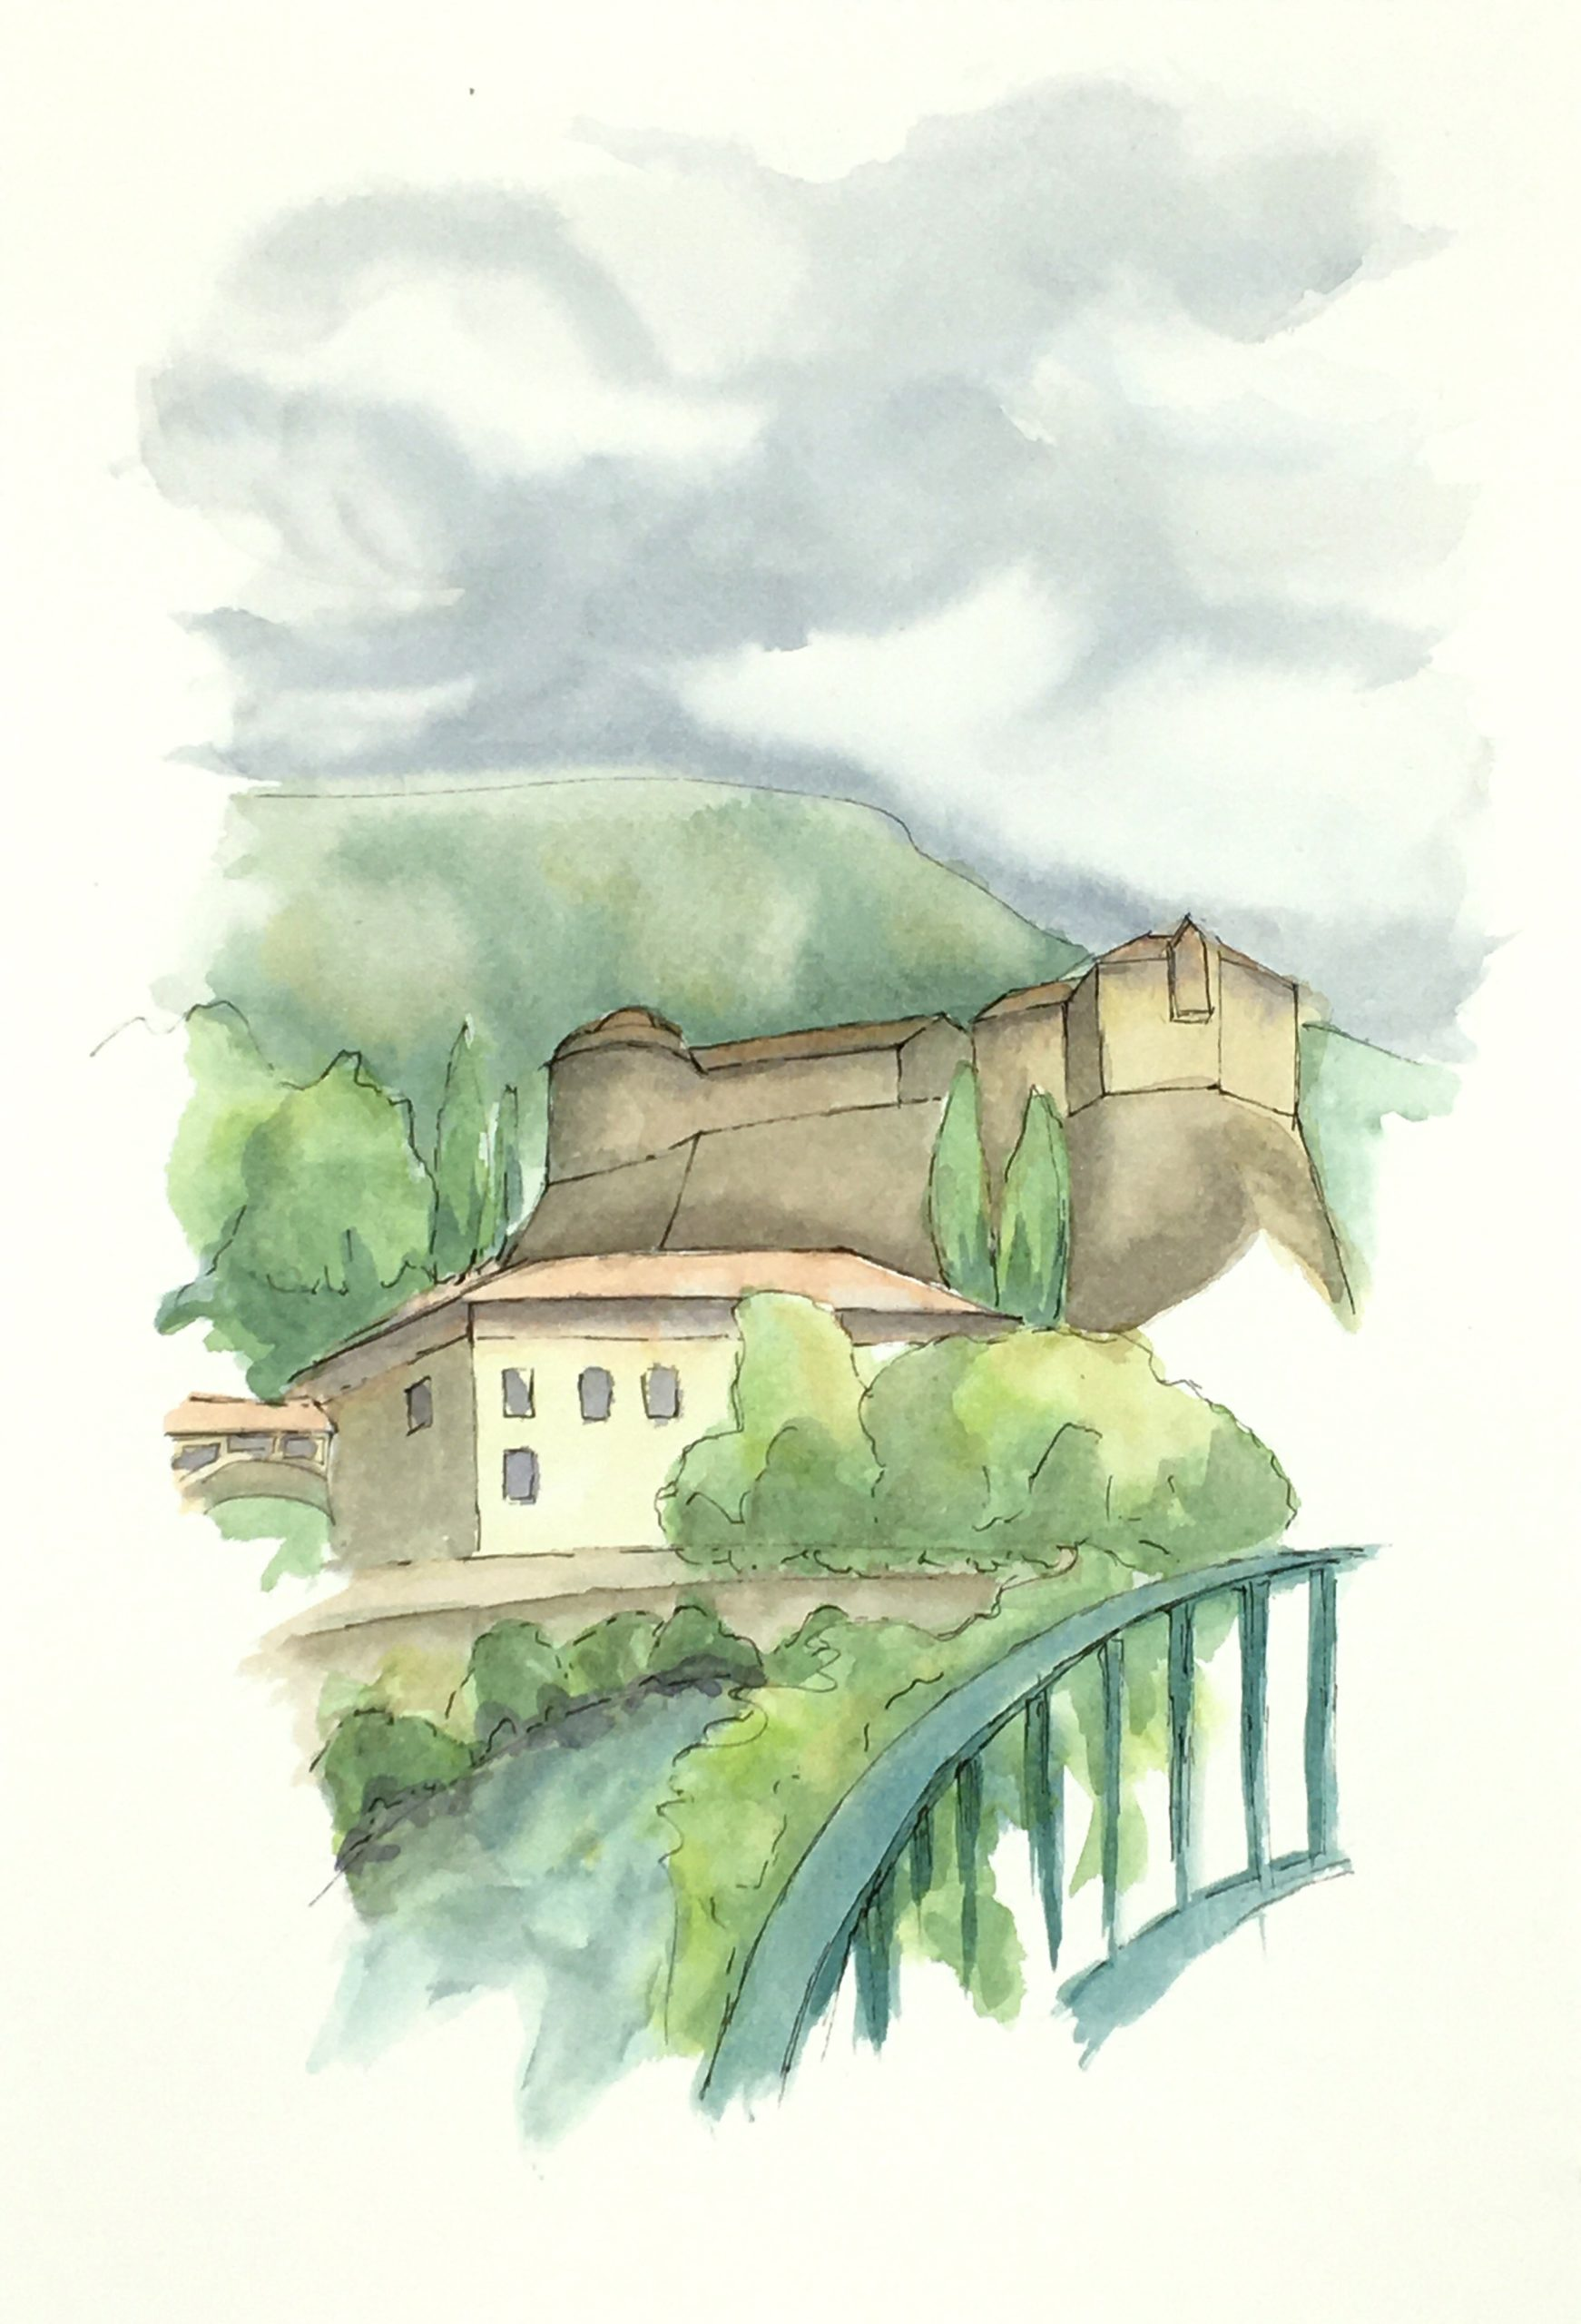 Painting of the The Magnificent Castle of Rovereto